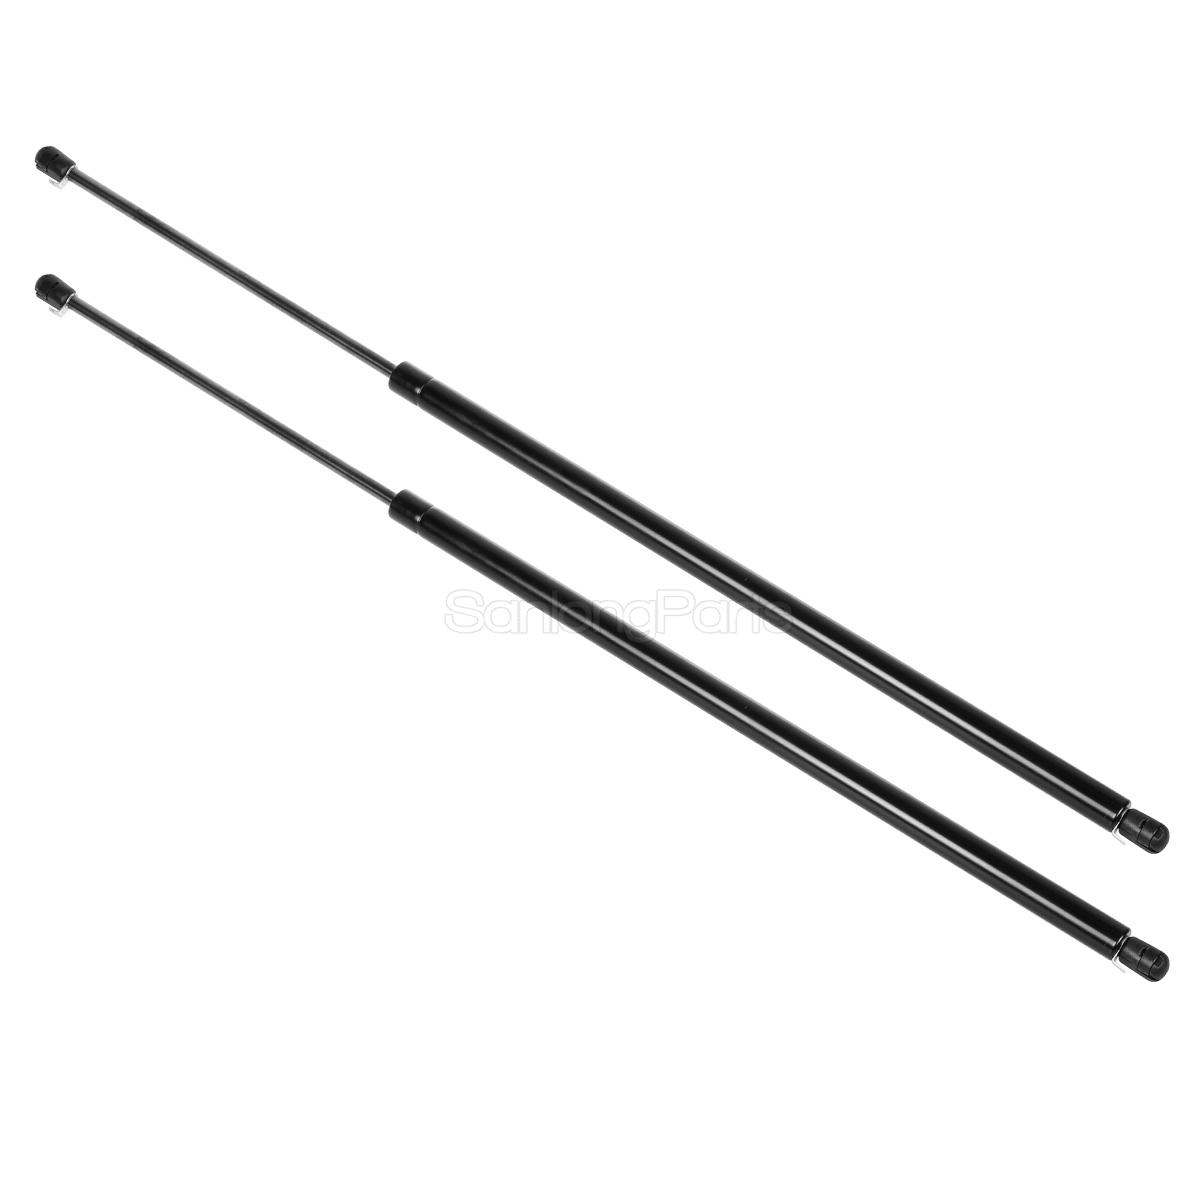 1Pair Rear Hatch Lift Supports Shocks Struts For Chevrolet